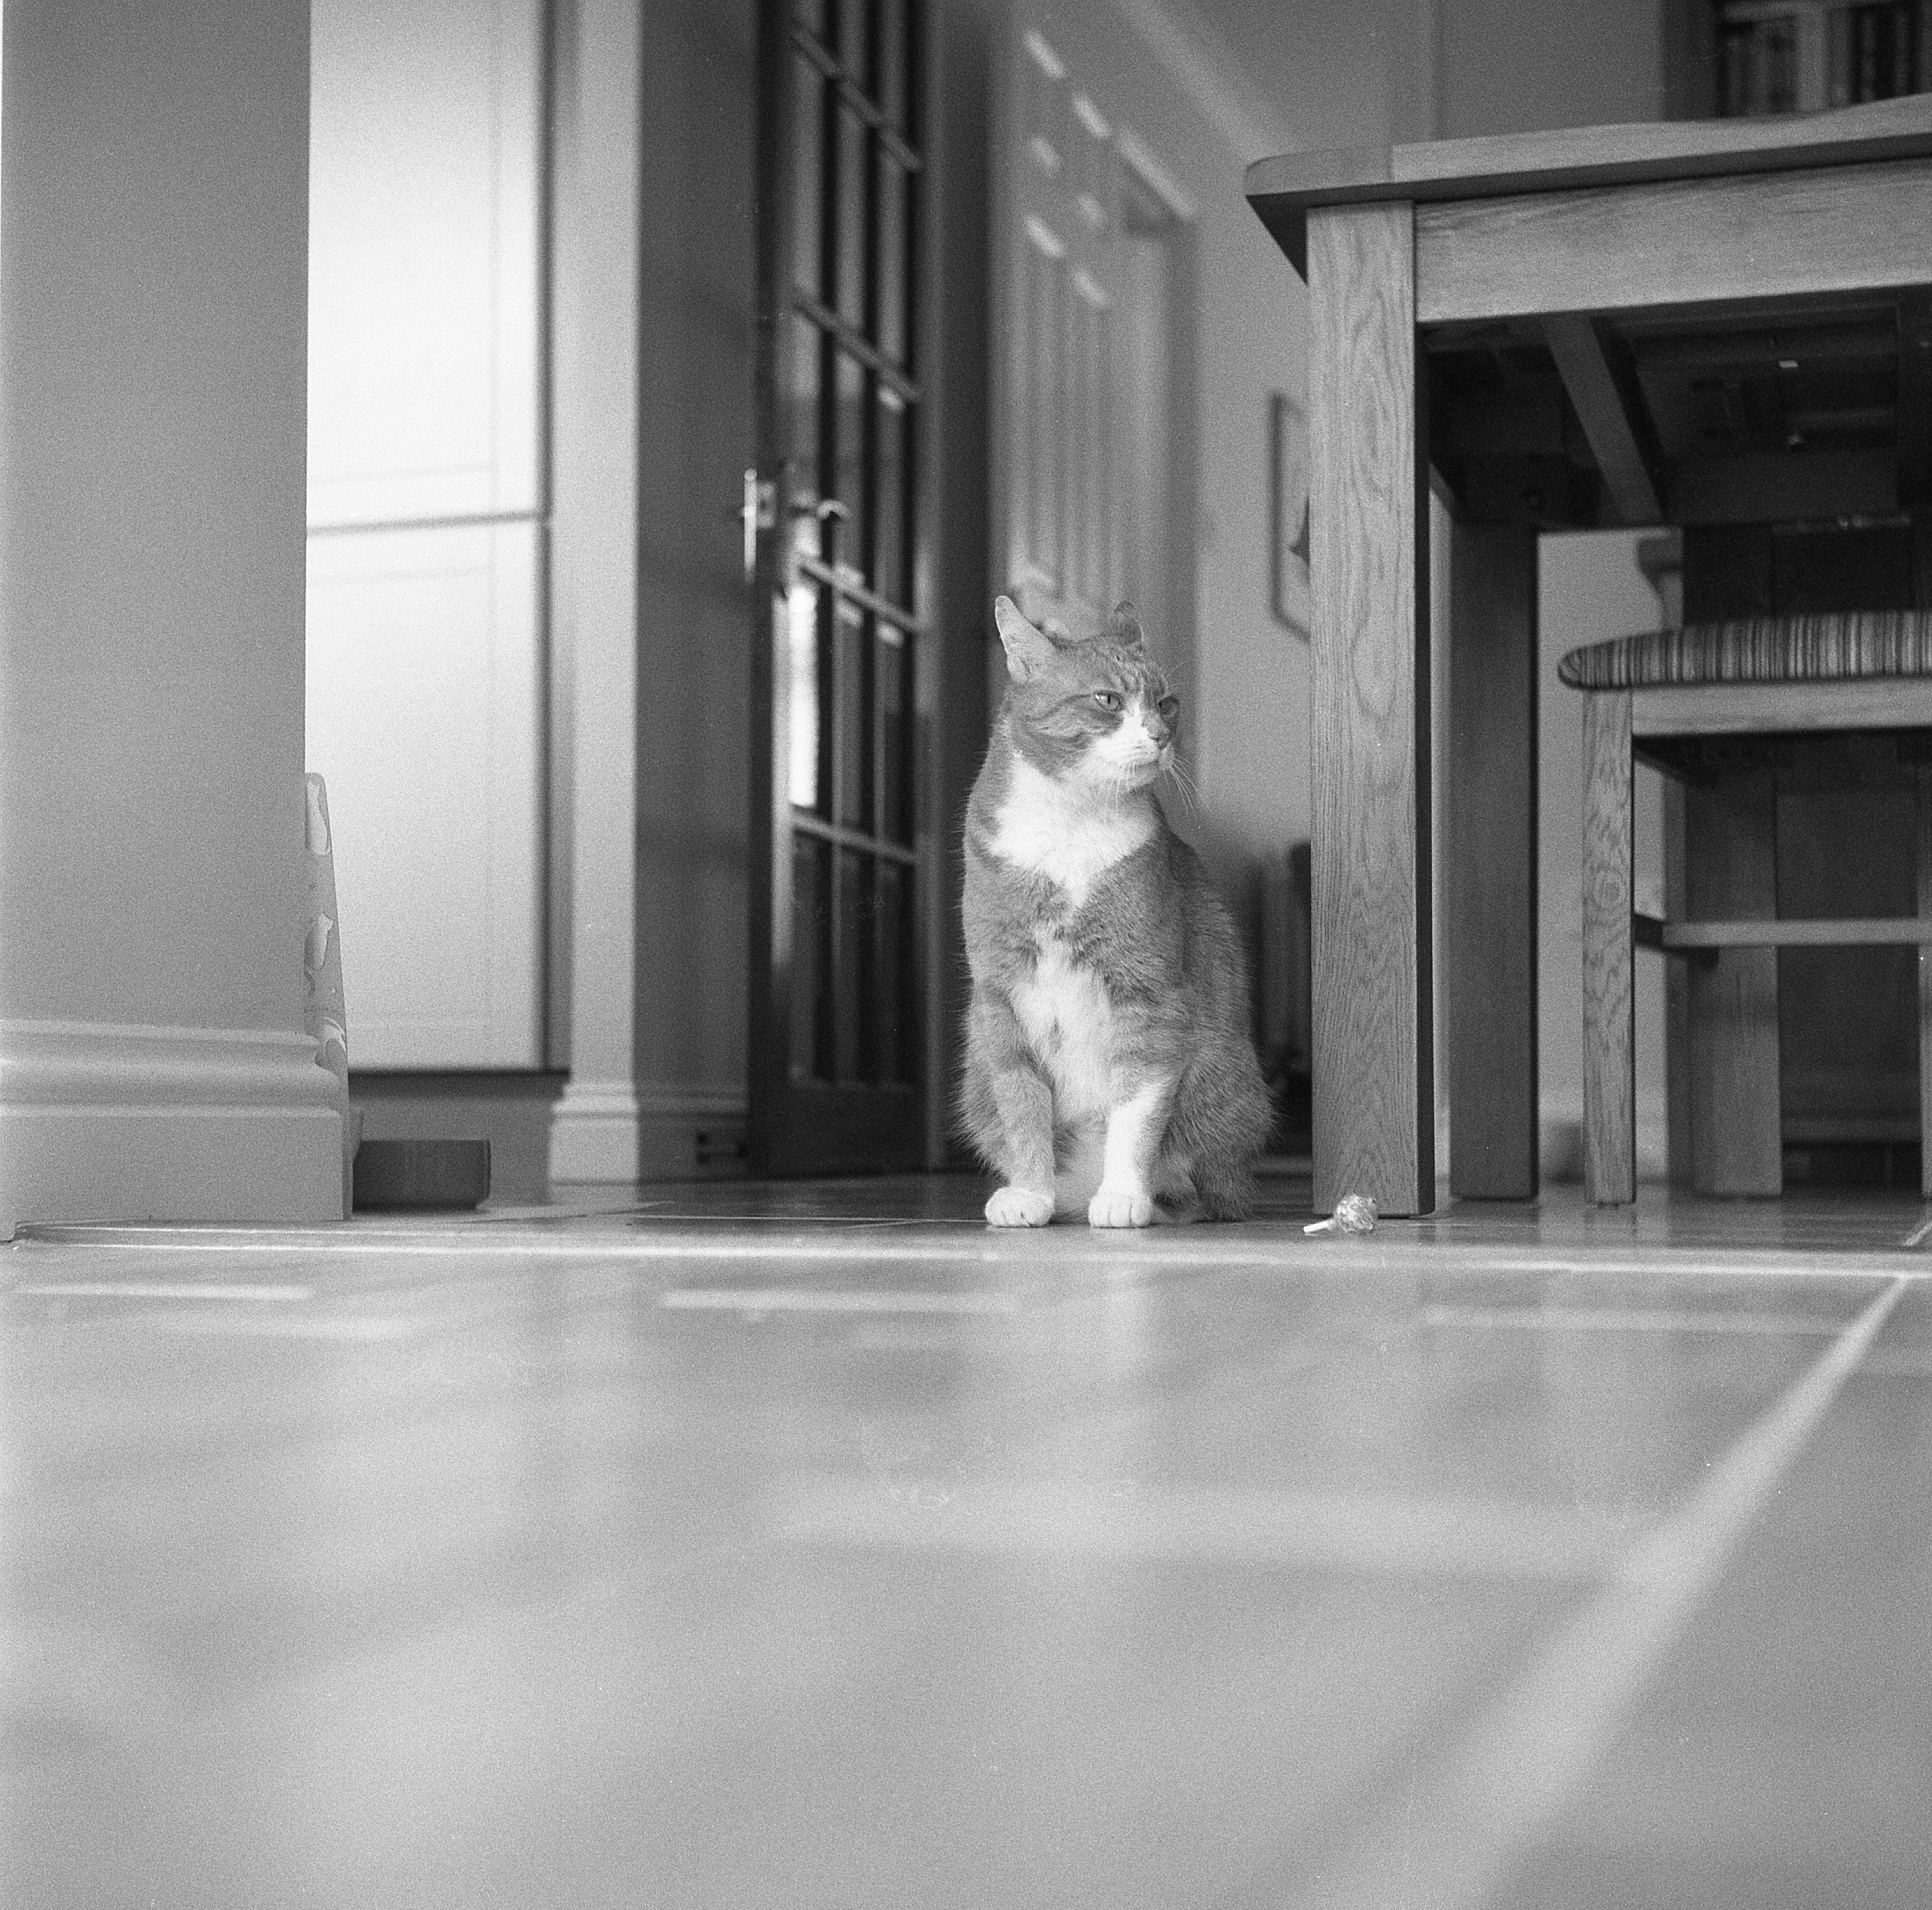 yashica 635 tlr ilford delta 3200 cat indoor